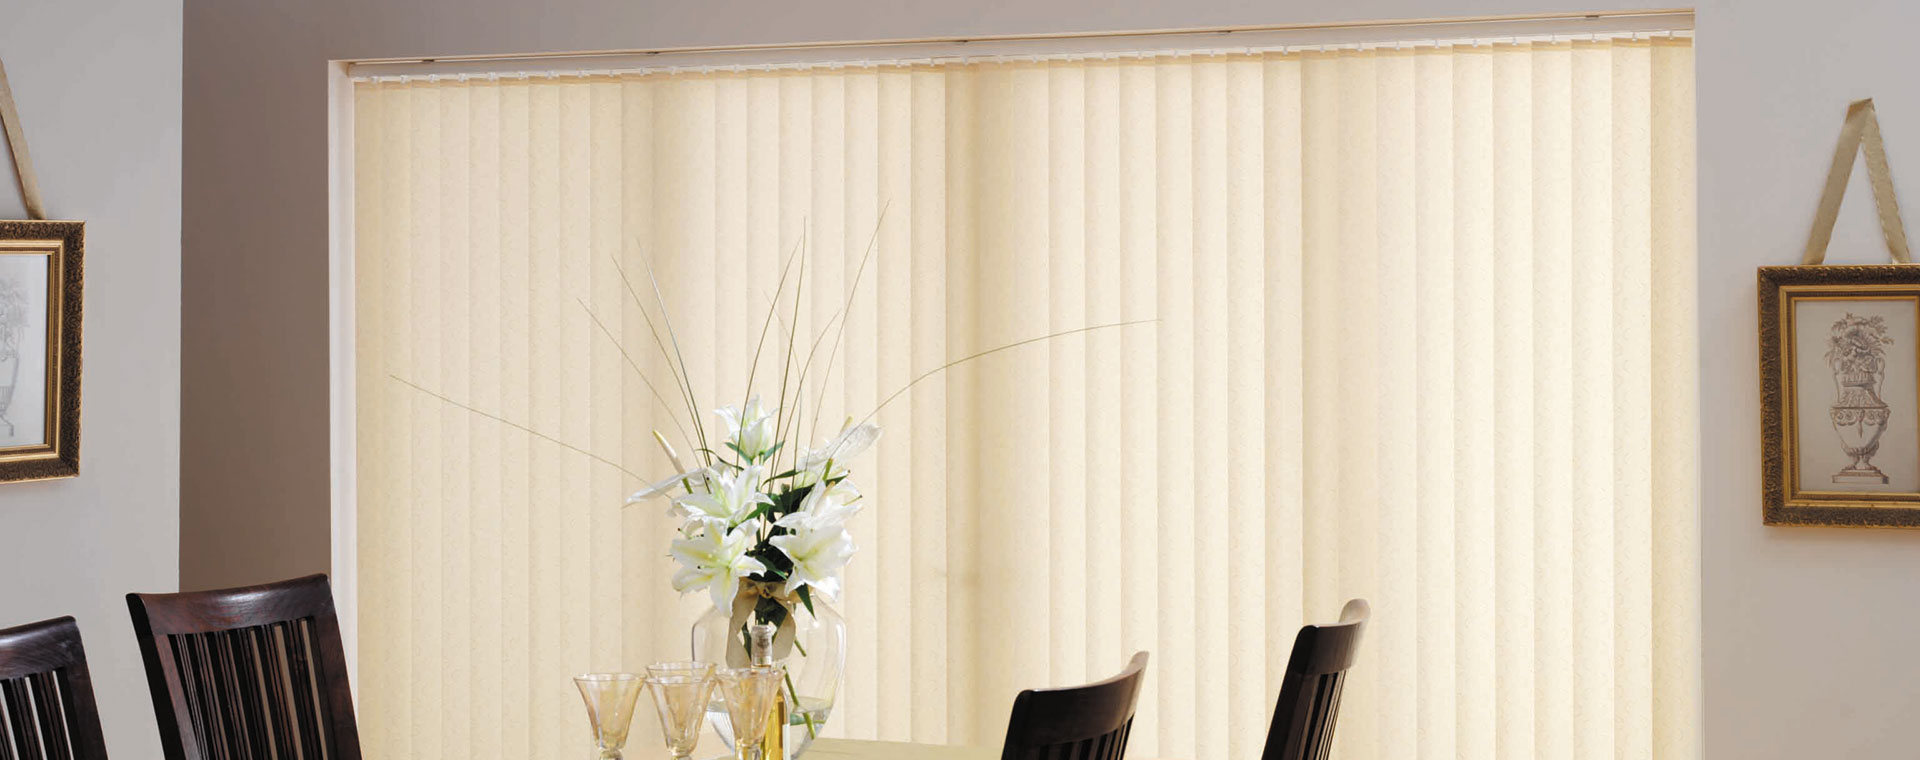 Vertical Blinds Slide 4